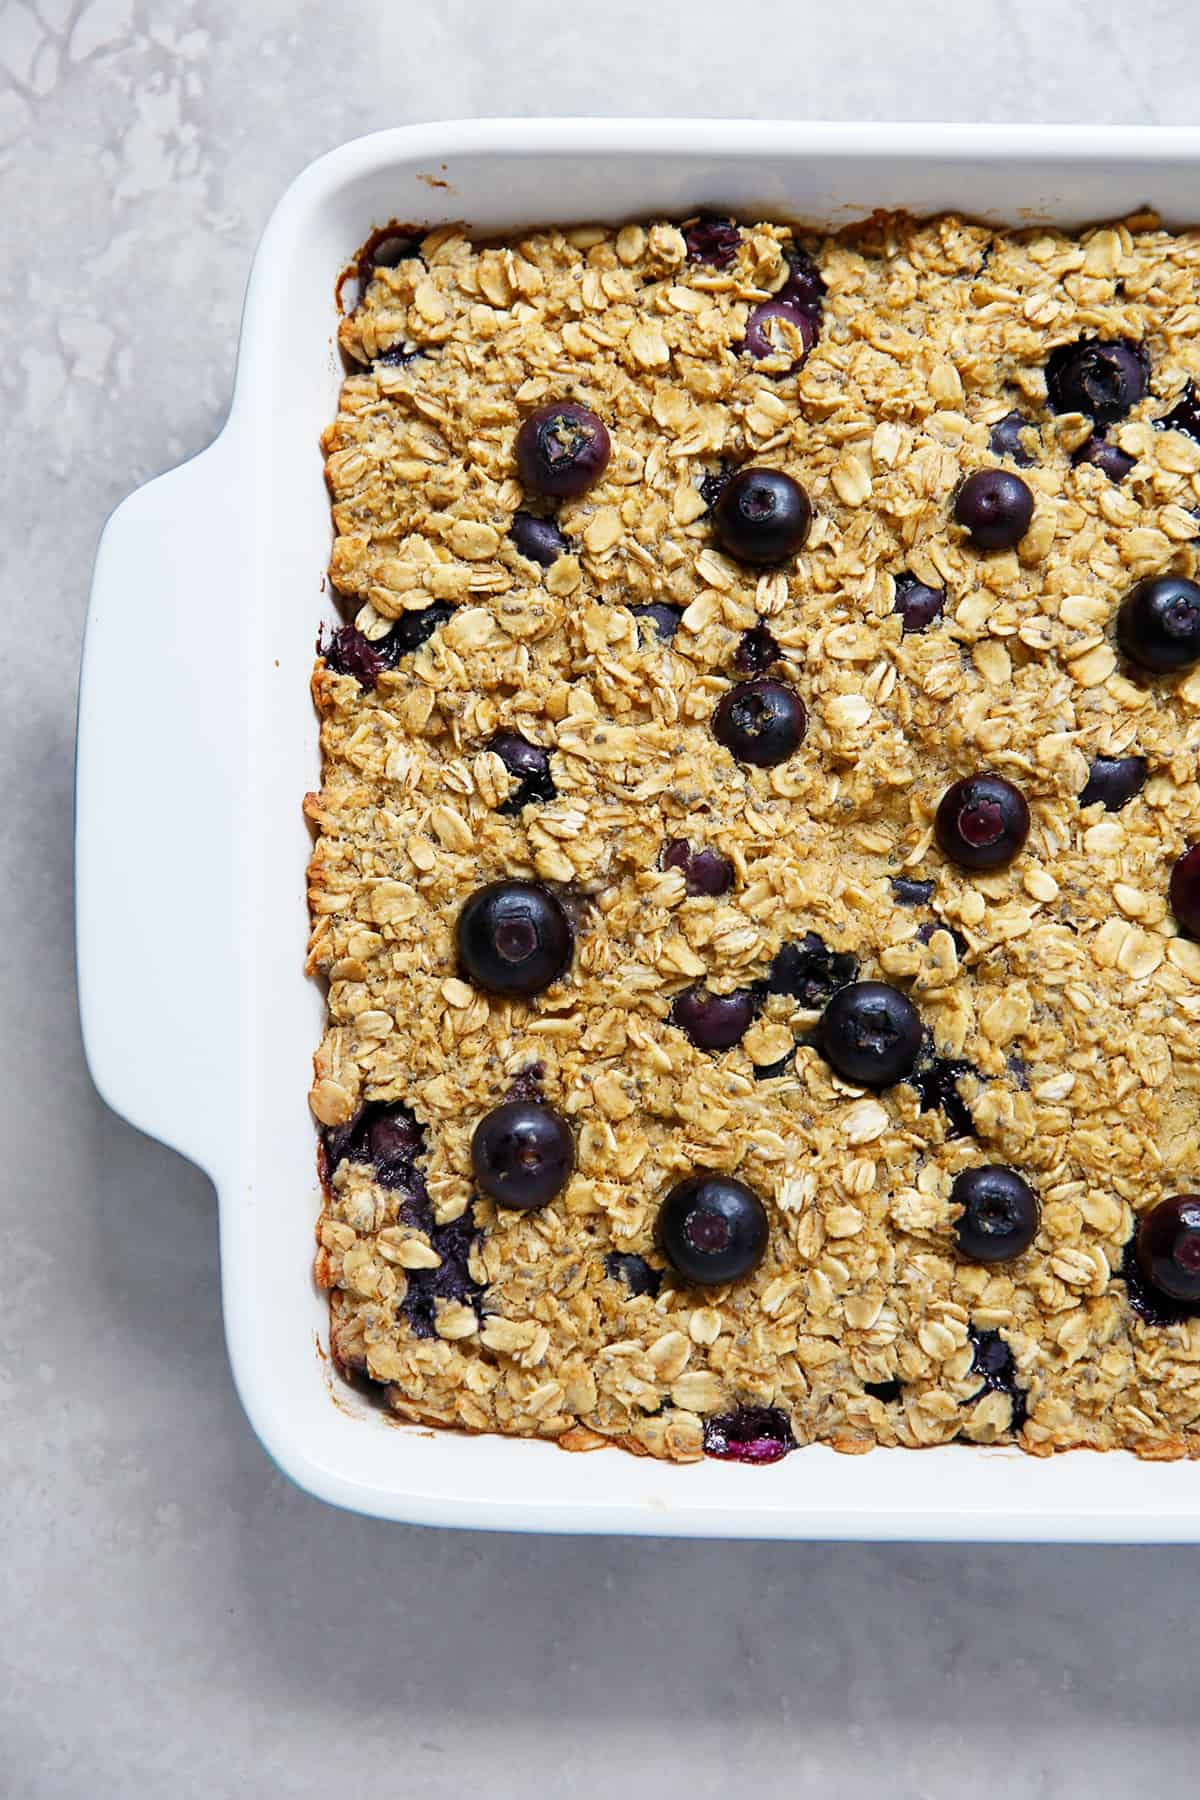 Maple Blueberry Baked Oats